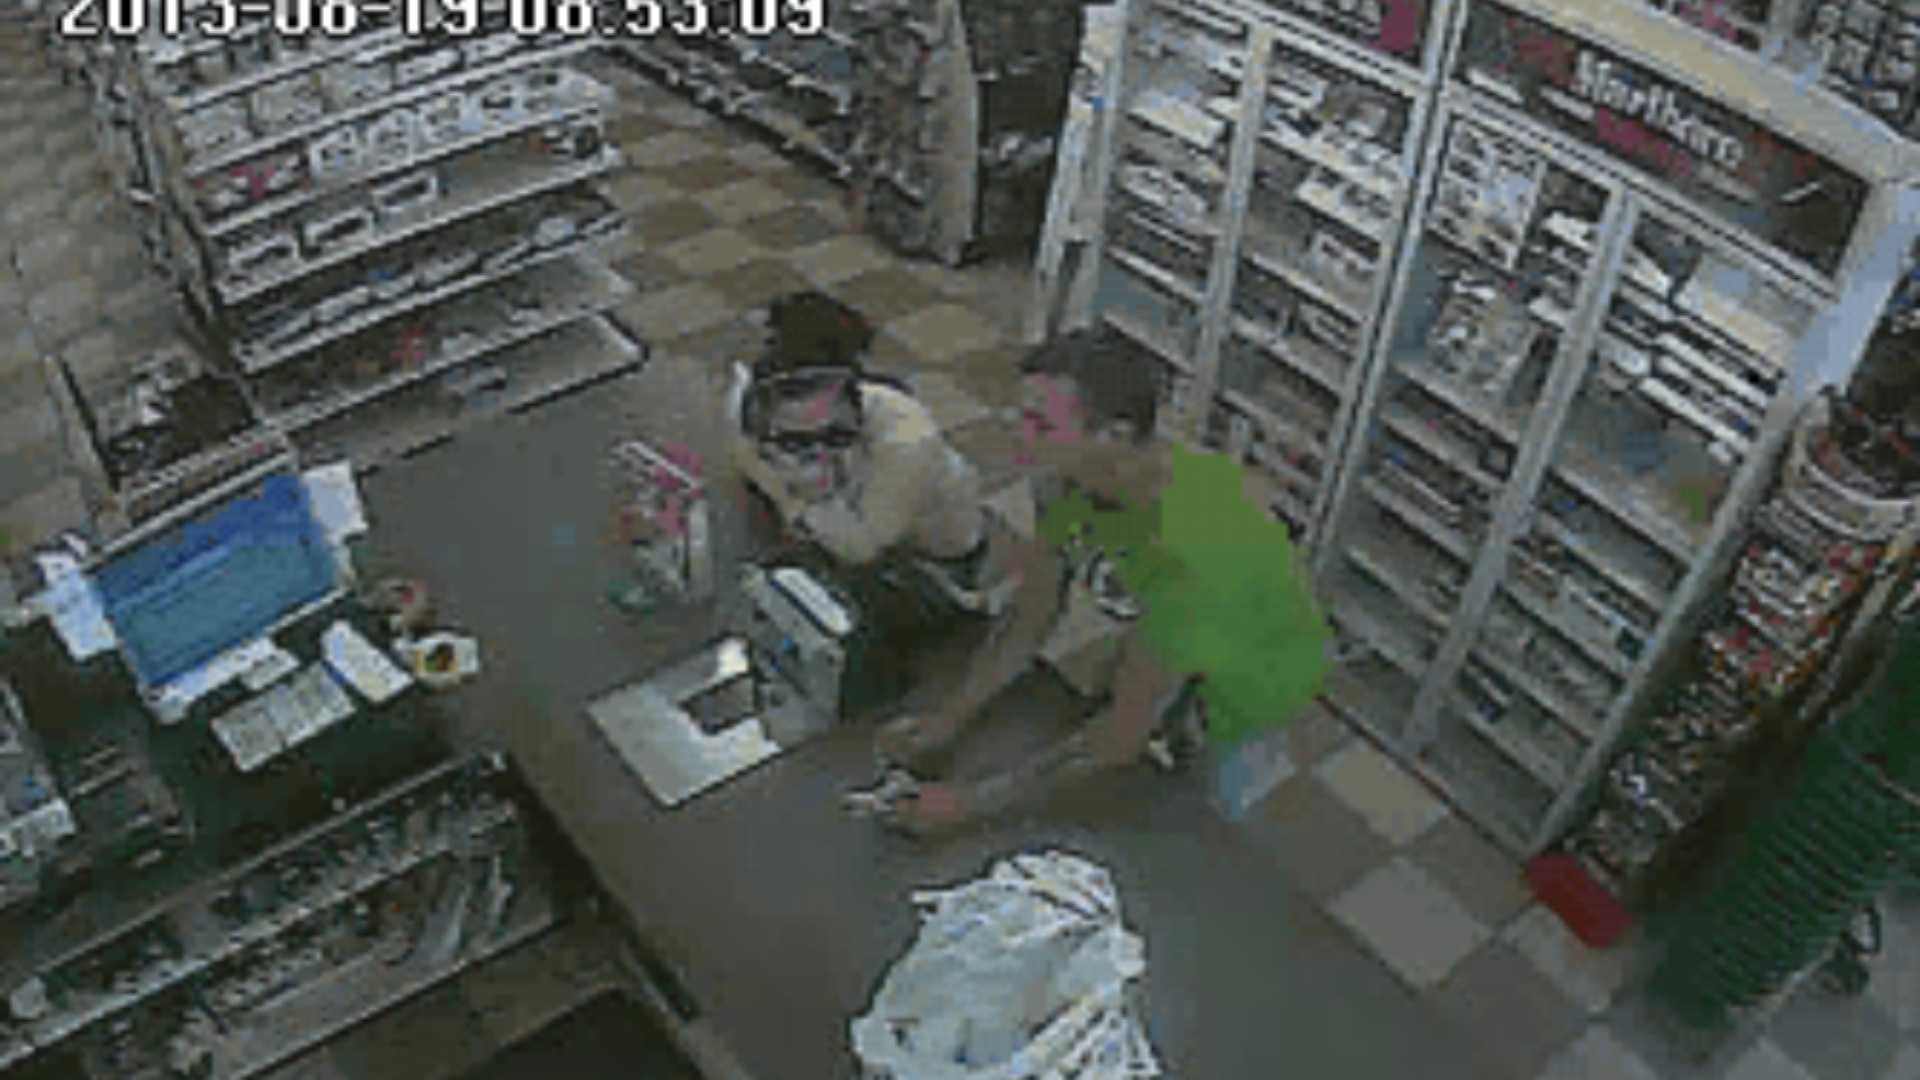 08-19-13 Police: Video captures thieves in act - IMG